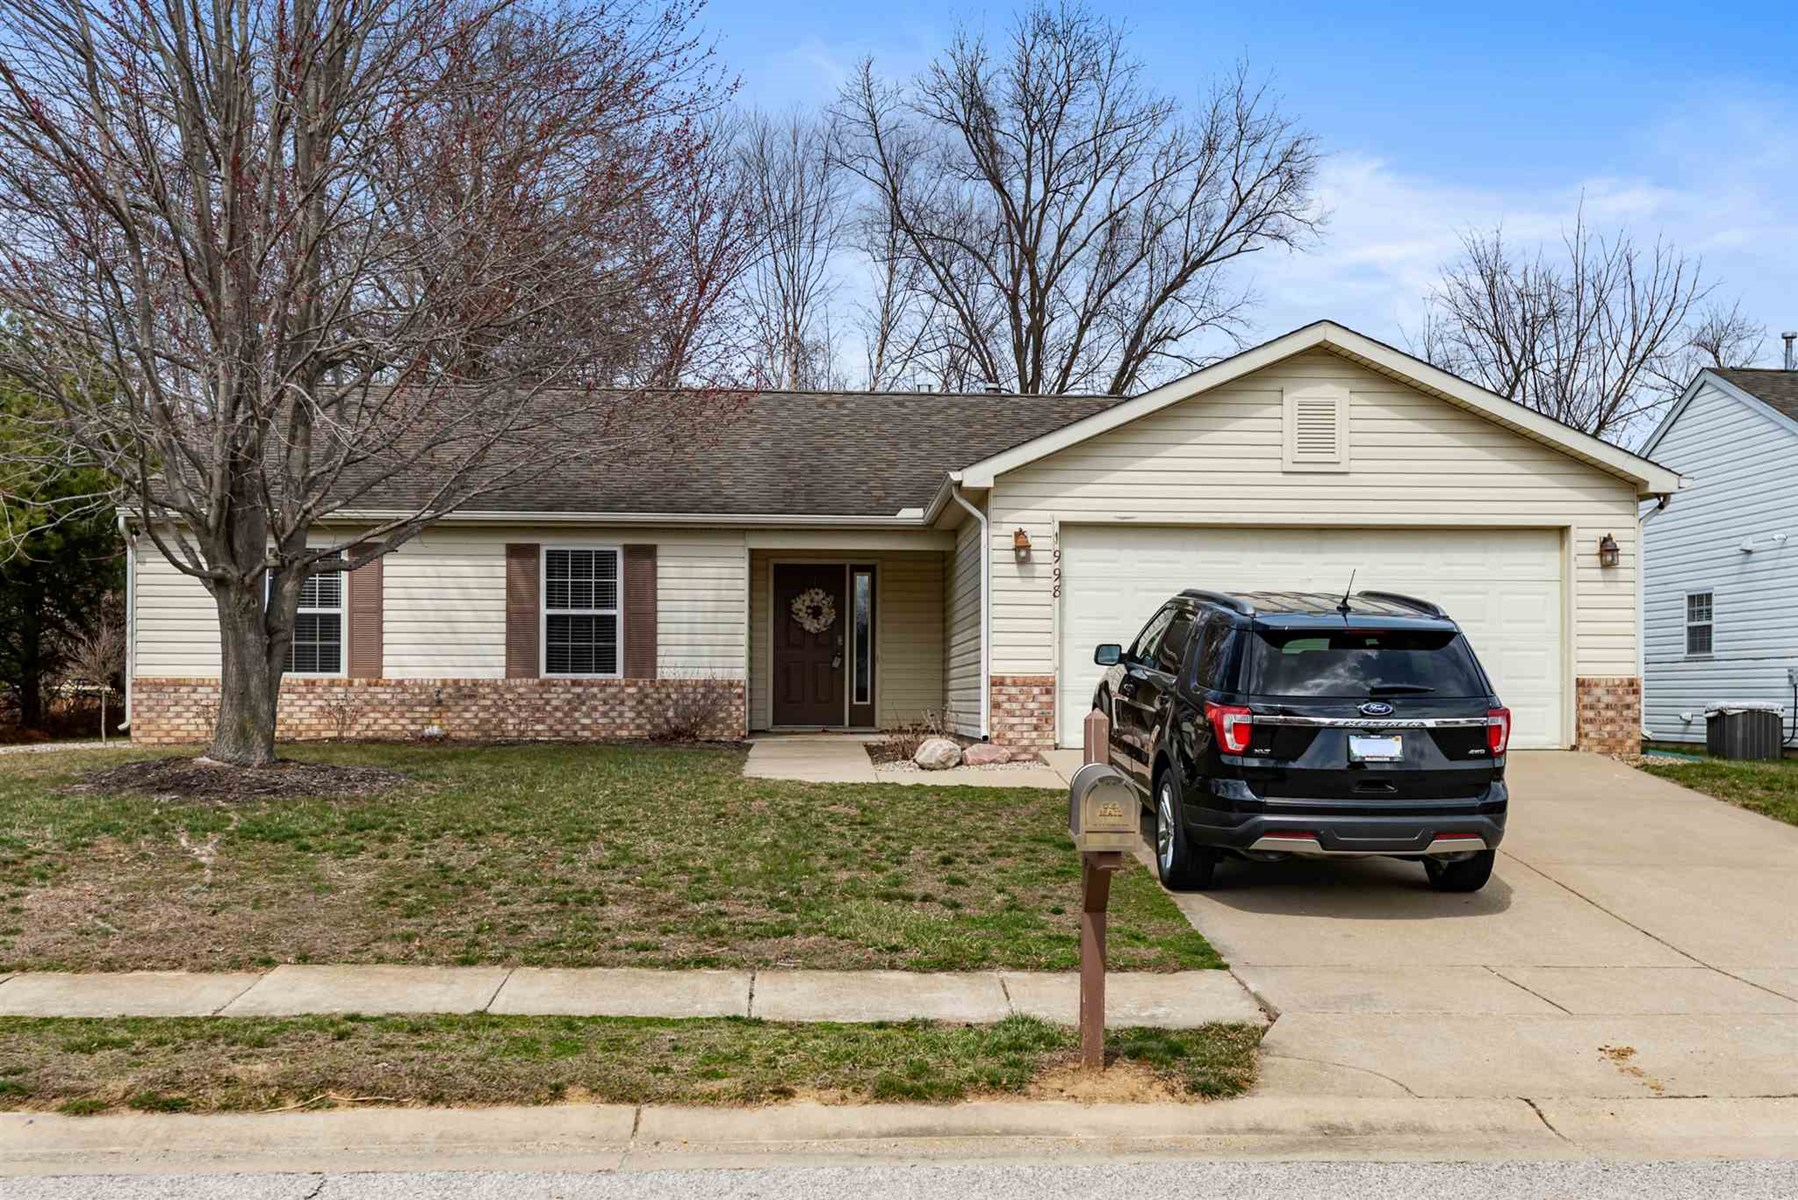 Home for Sale West Lafayette, Indiana